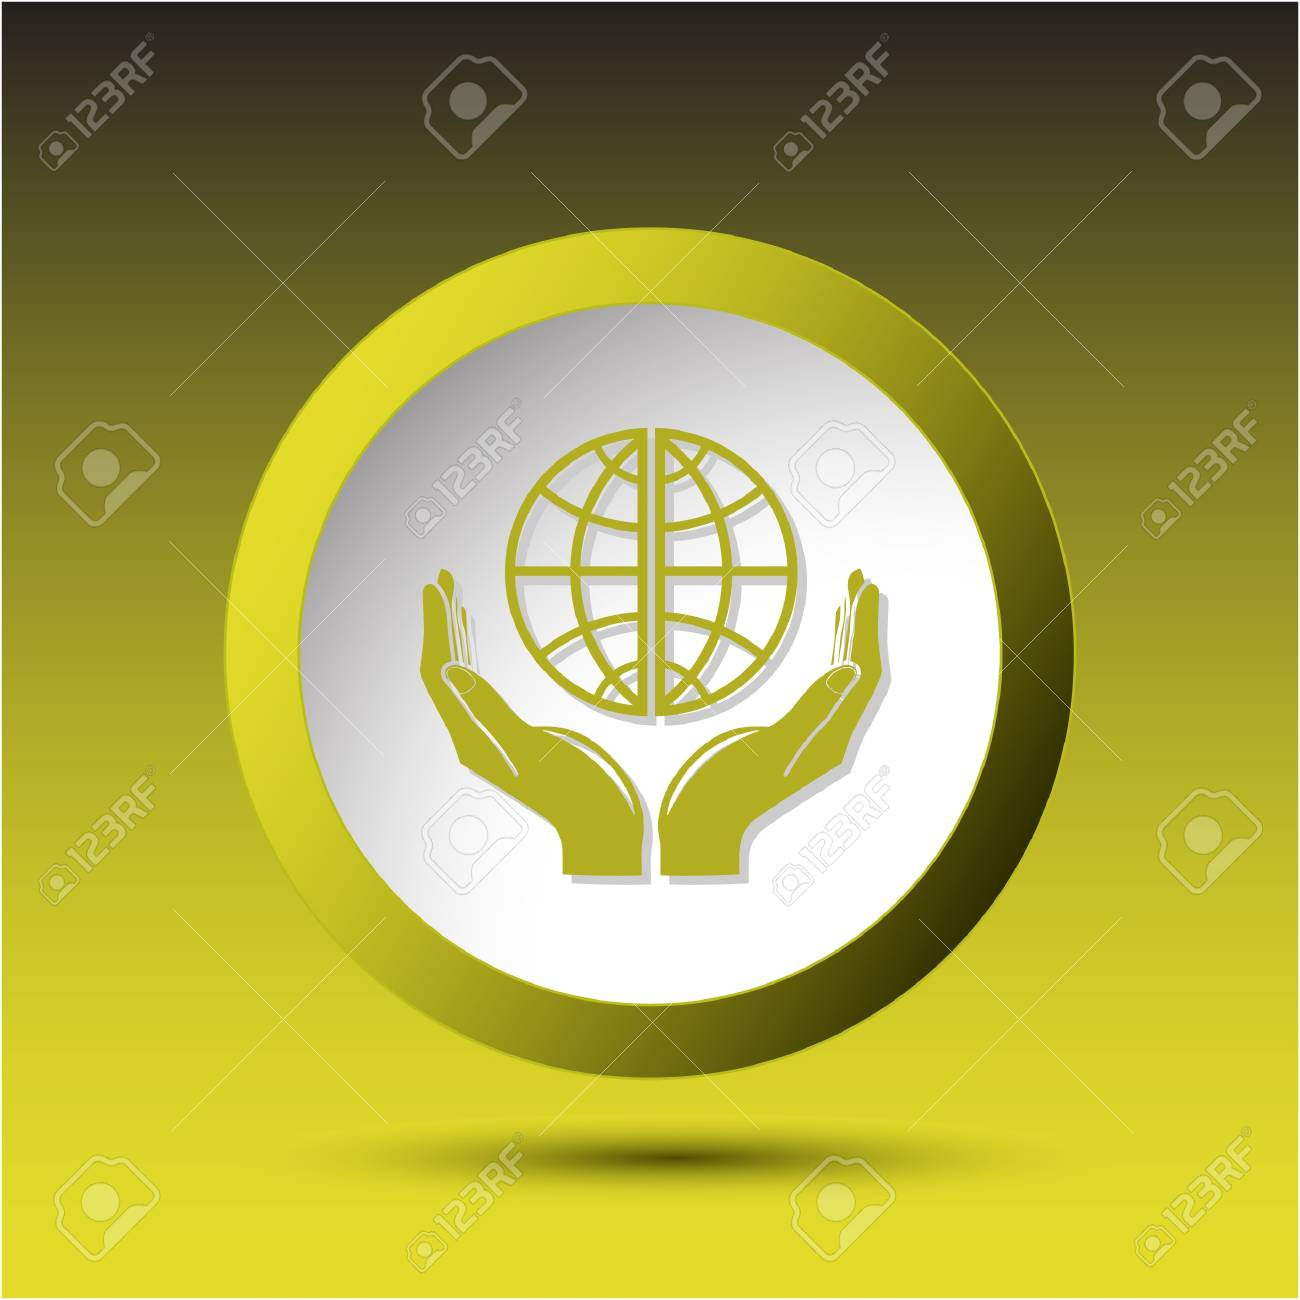 Protection world. Plastic button Stock Photo - 15469750